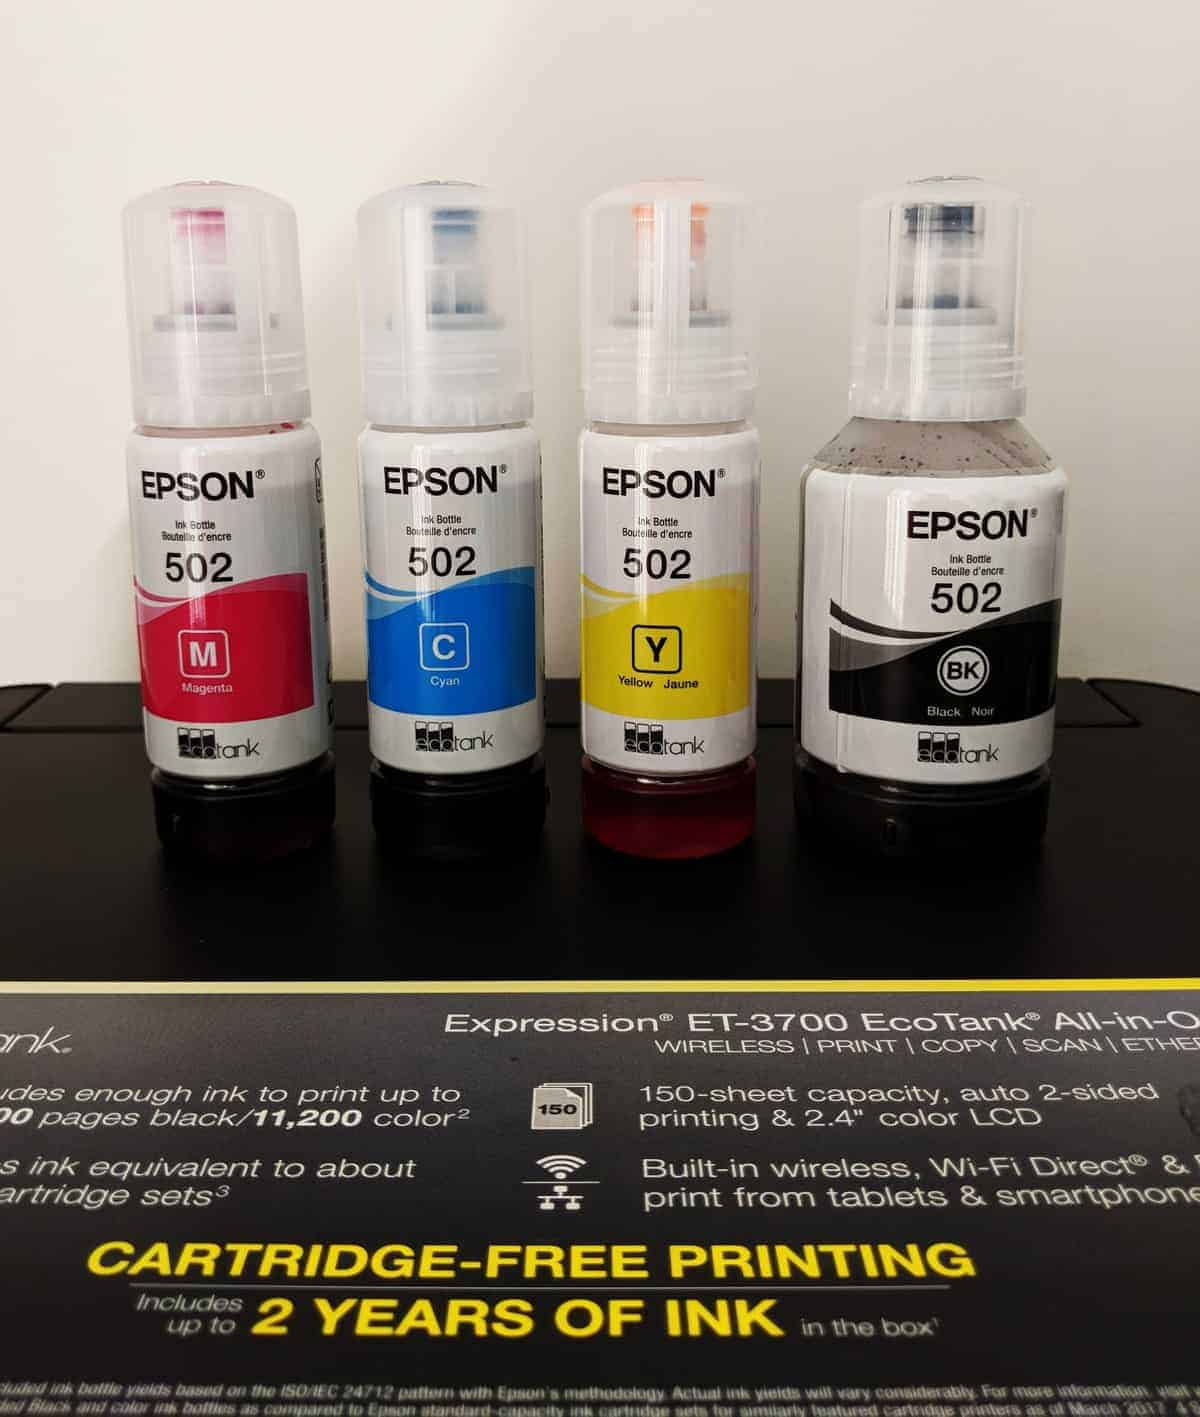 Epson Expression ET-3700 Review - The Streaming Blog